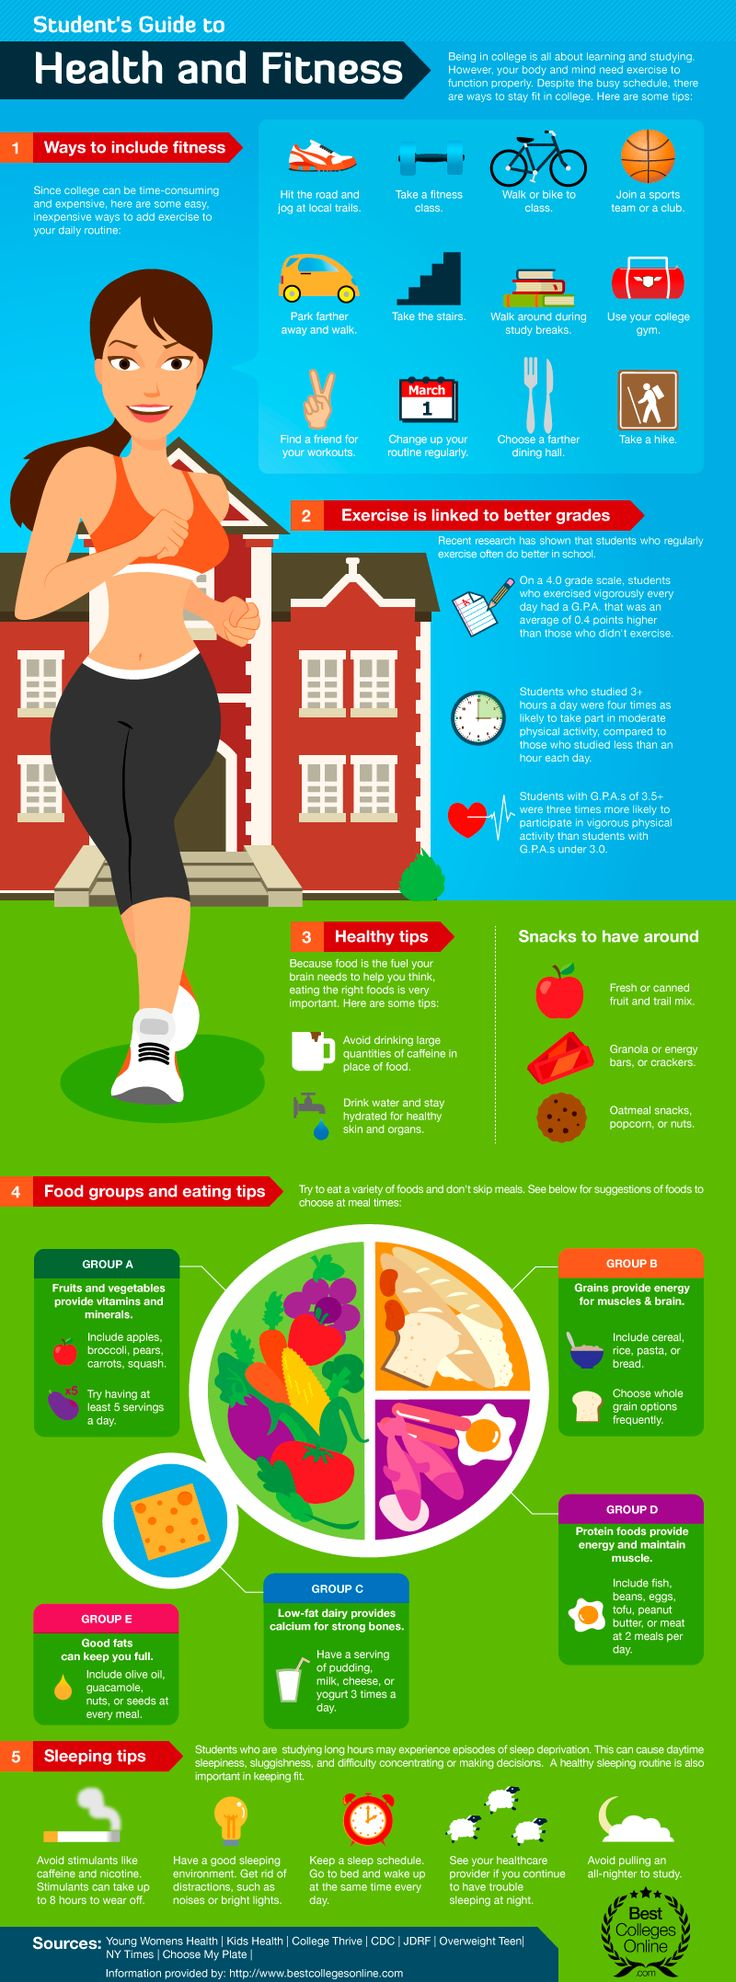 A fun infographic with great advice - also an invitation to a FREE local food presentation!